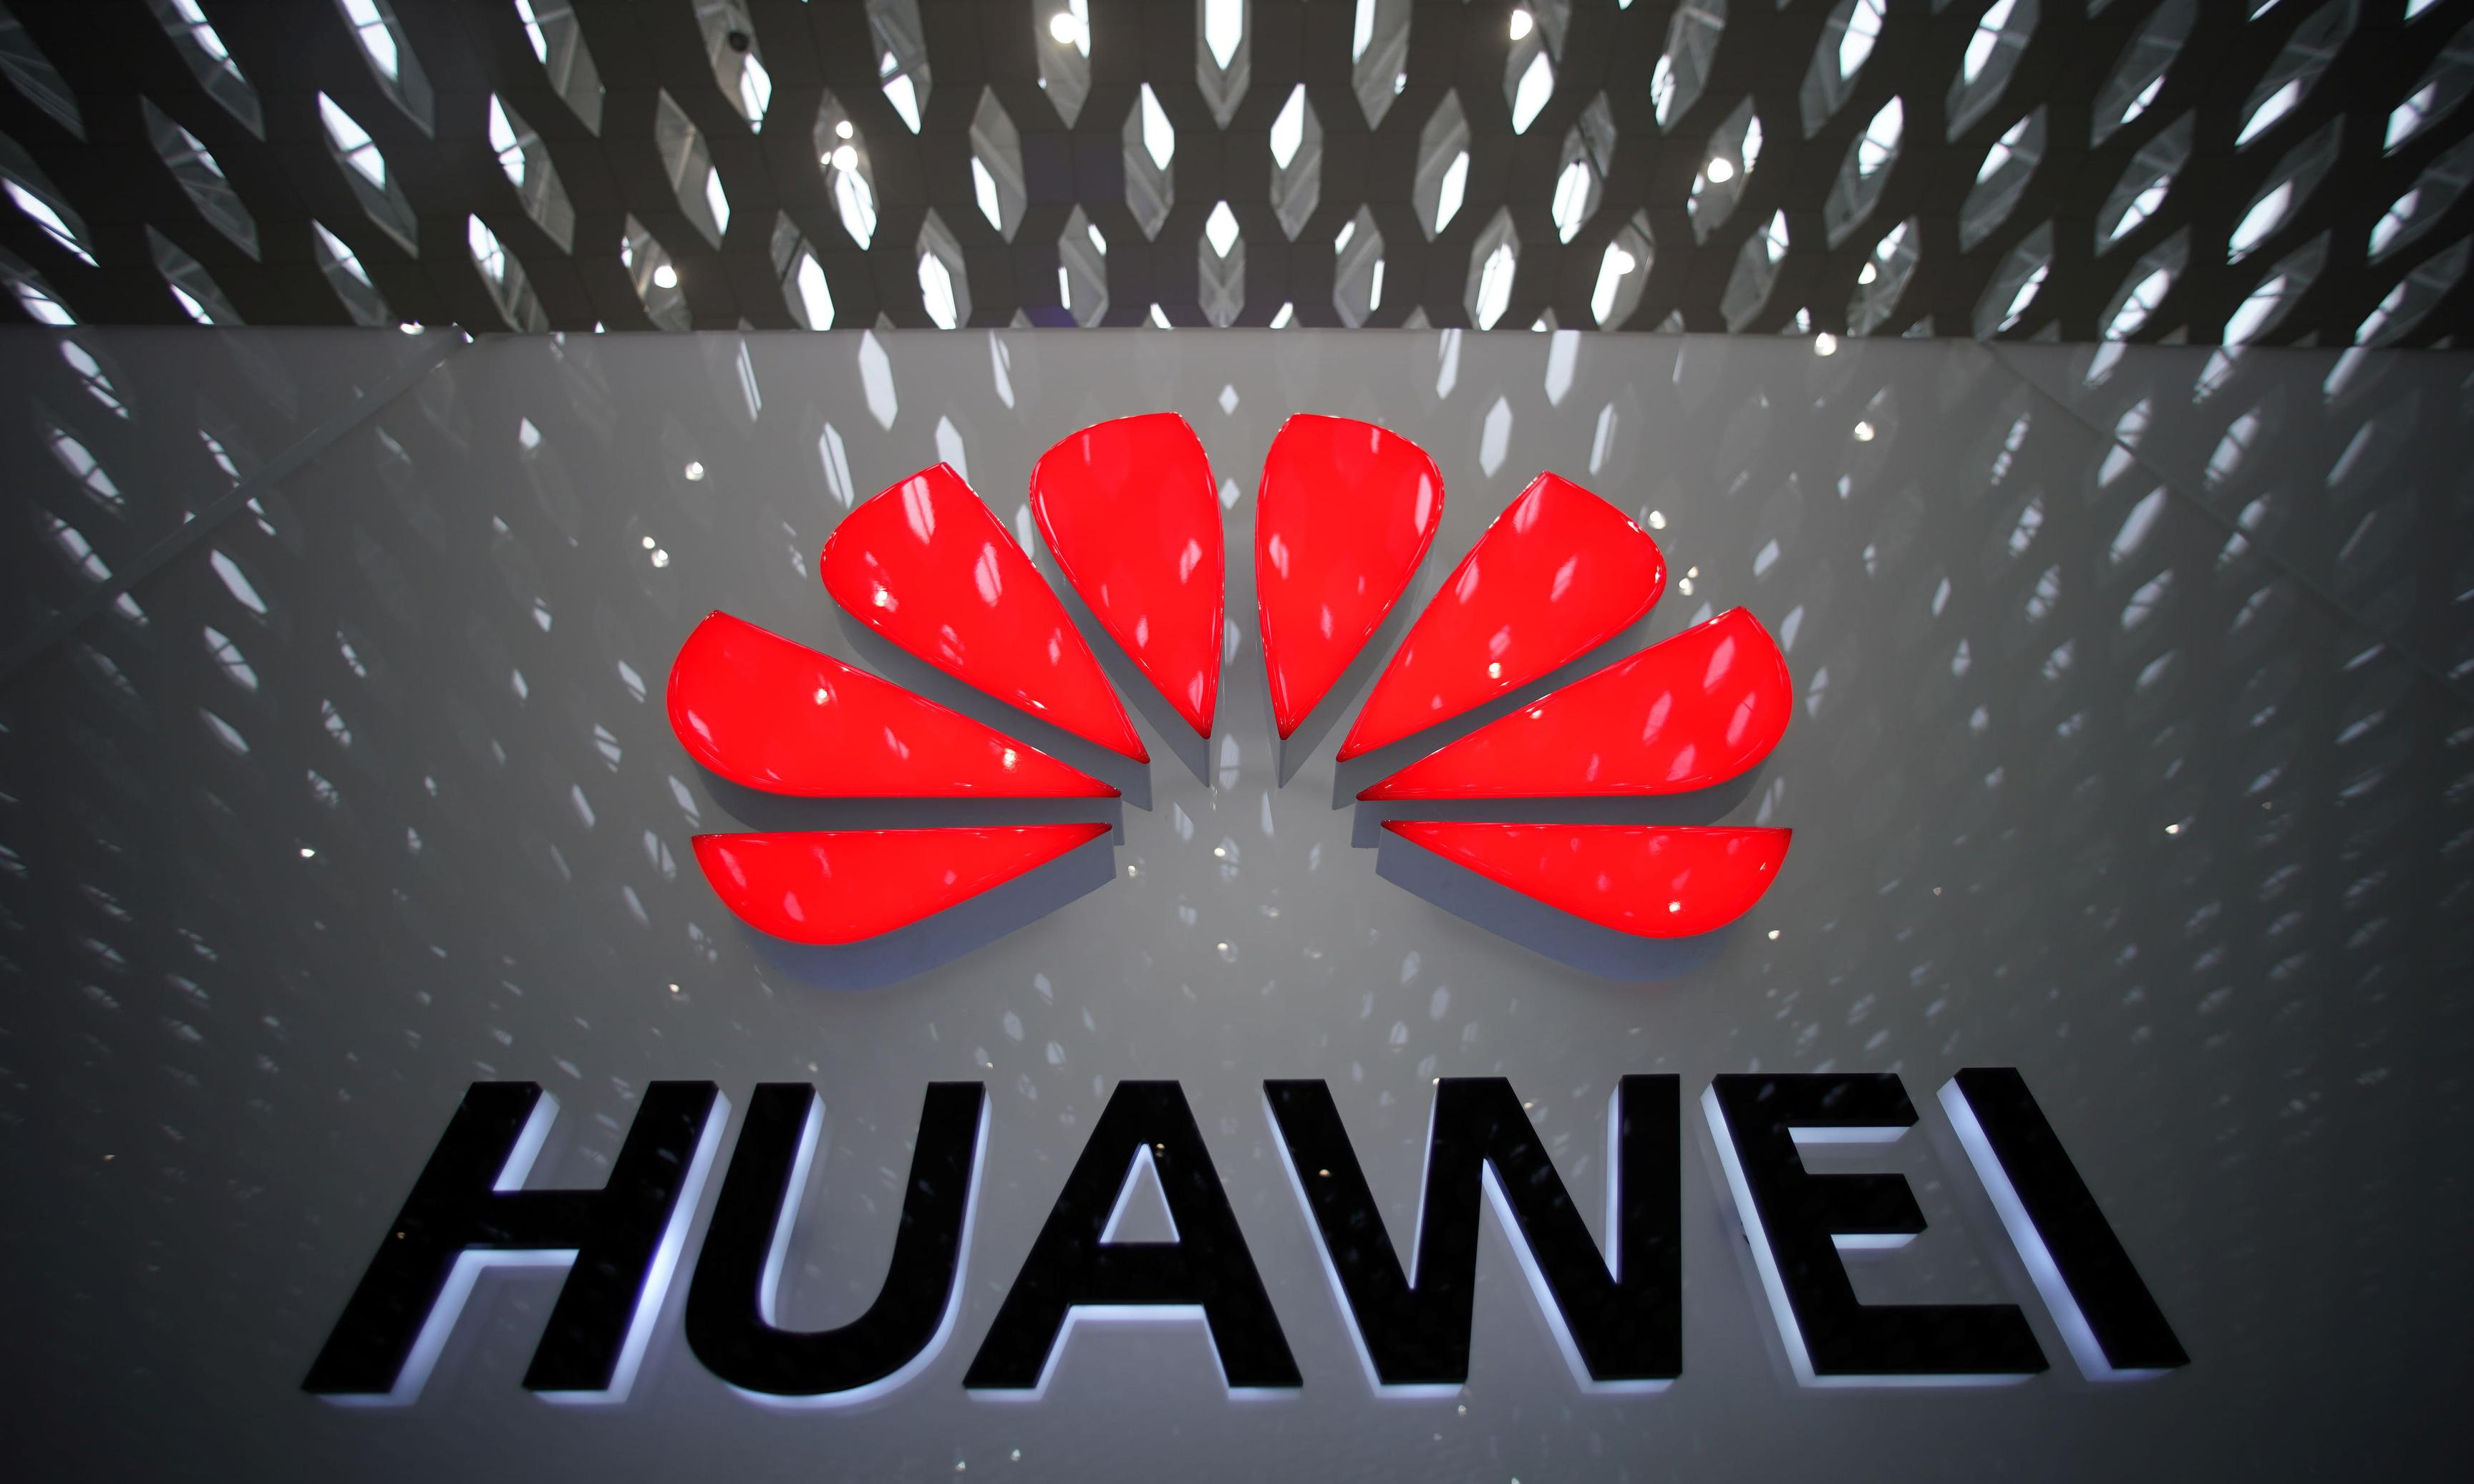 Government delays decision on whether to restrict Huawei